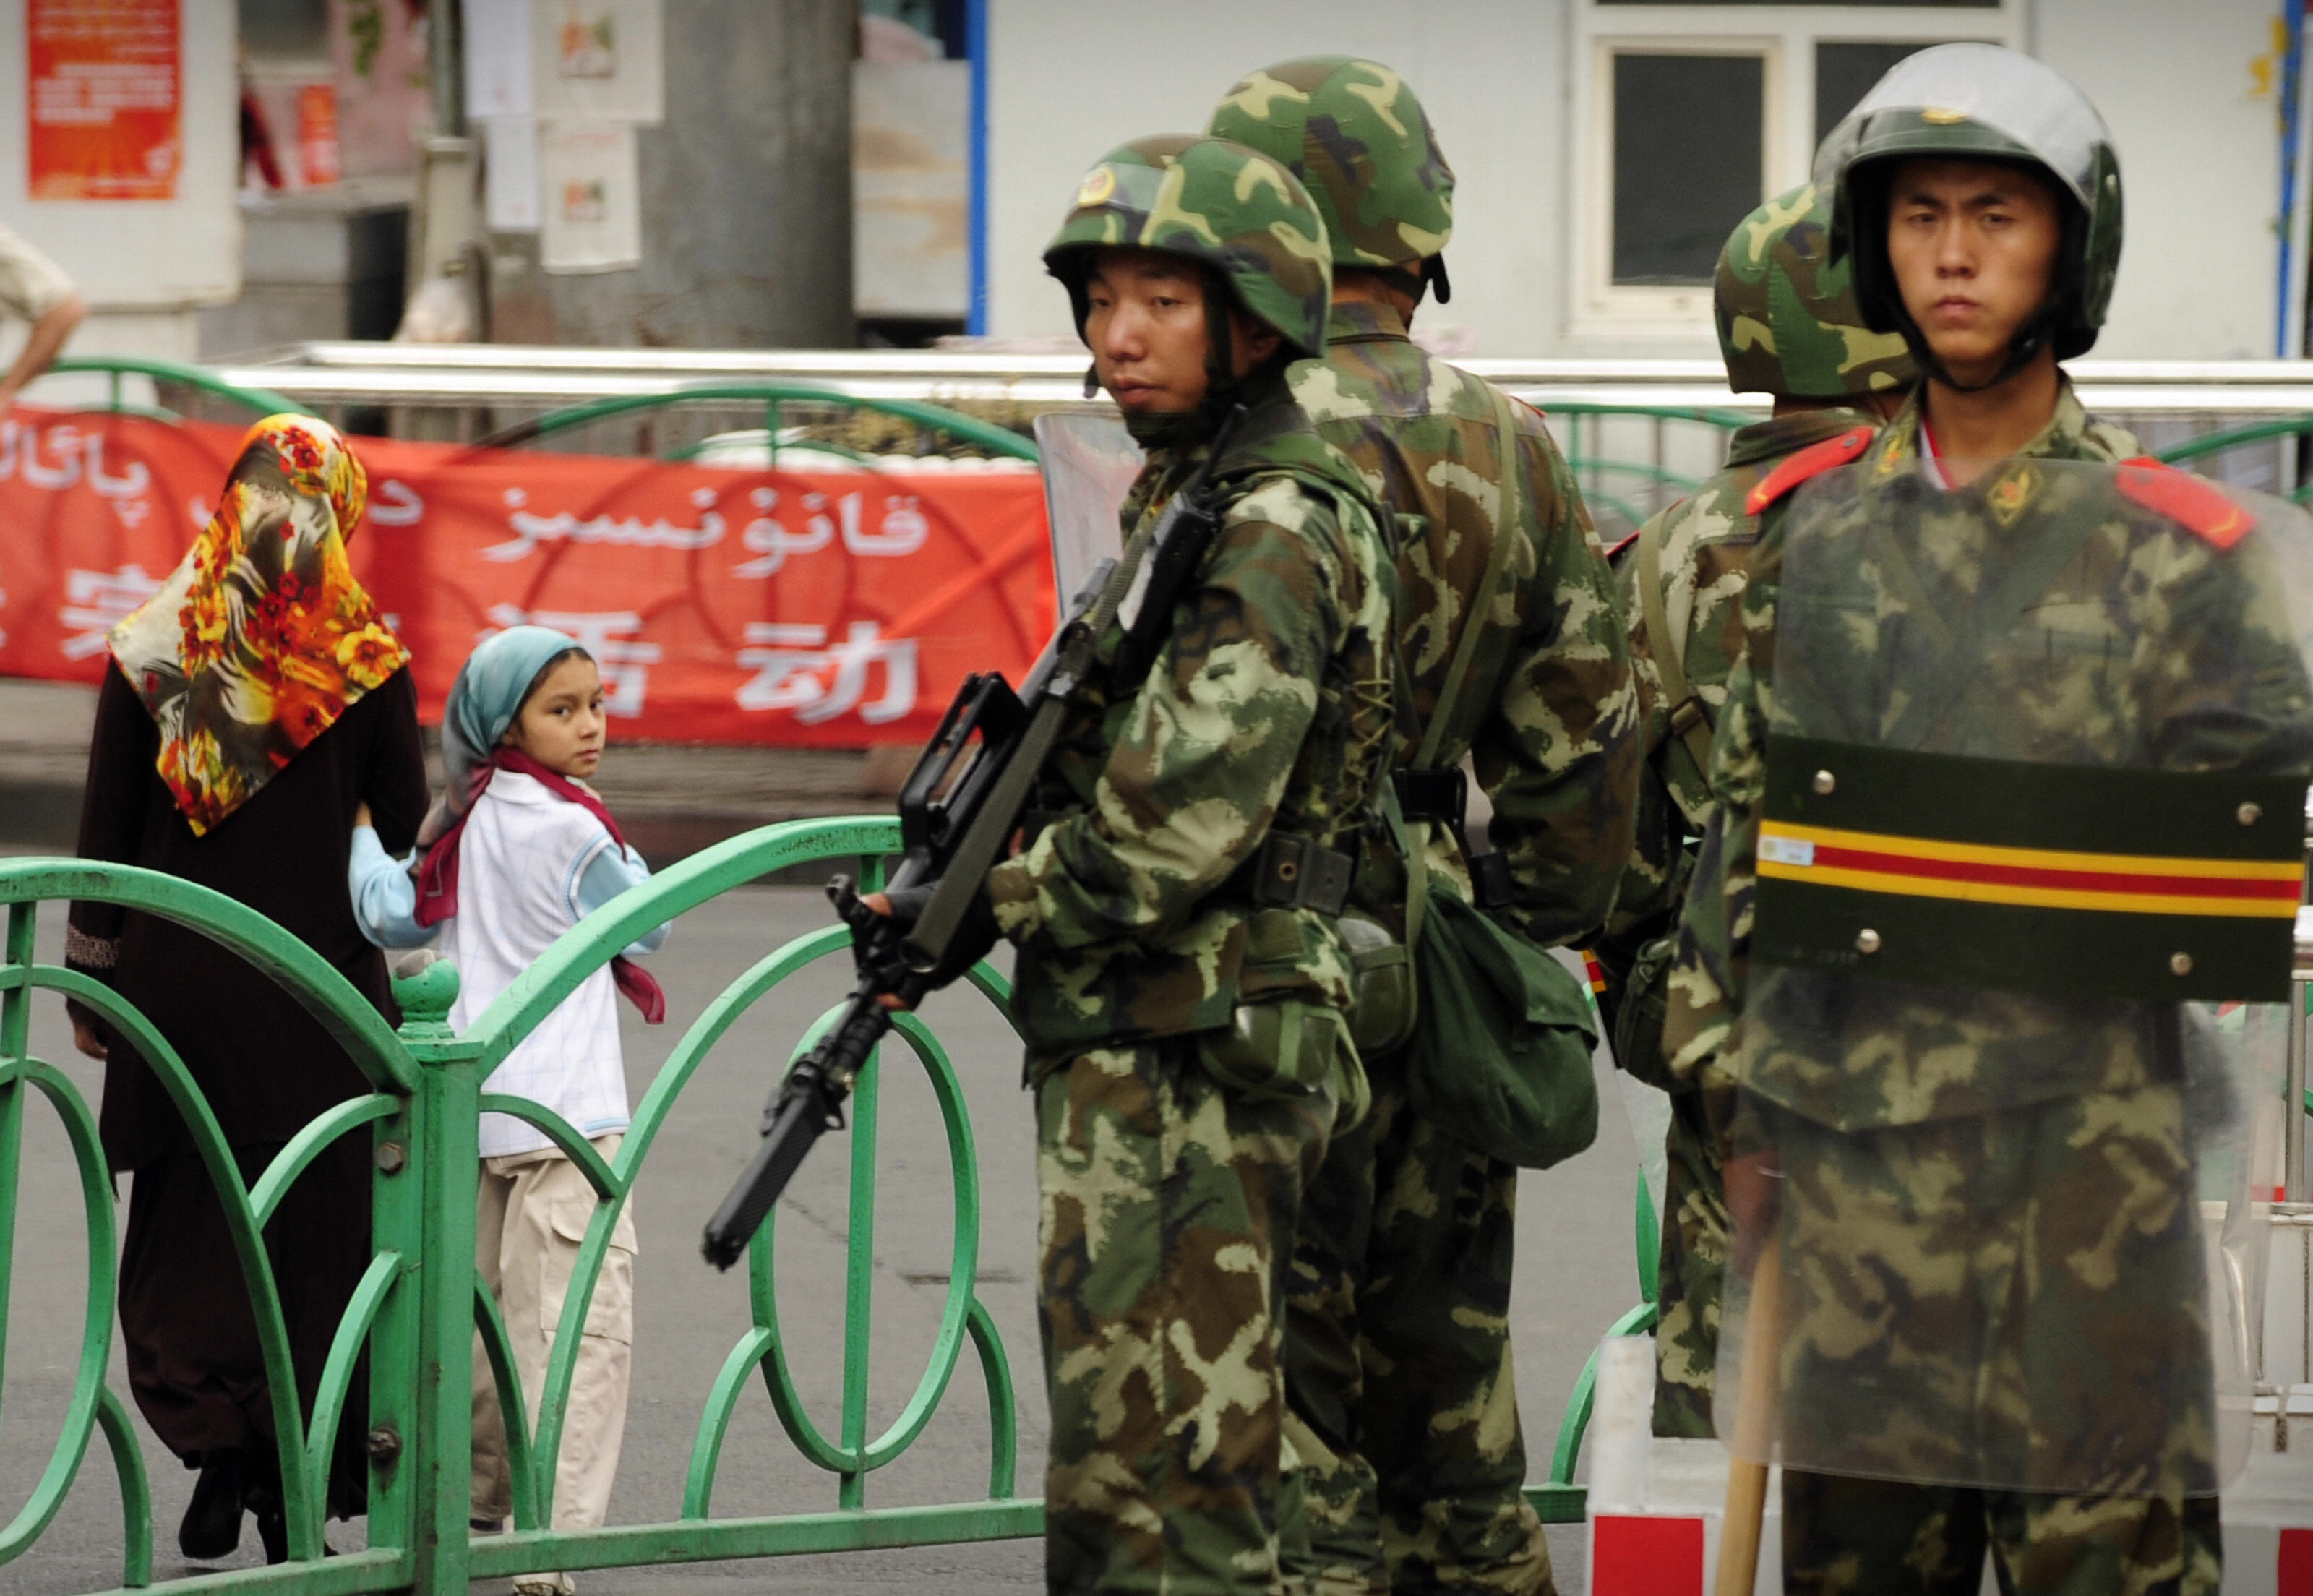 Chinese paramilitary policemen stand guard on a street in the Uighur district of Urumqi city, in China's Xinjiang region, on July 14, 2009. (PETER PARKS/AFP via Getty Images)